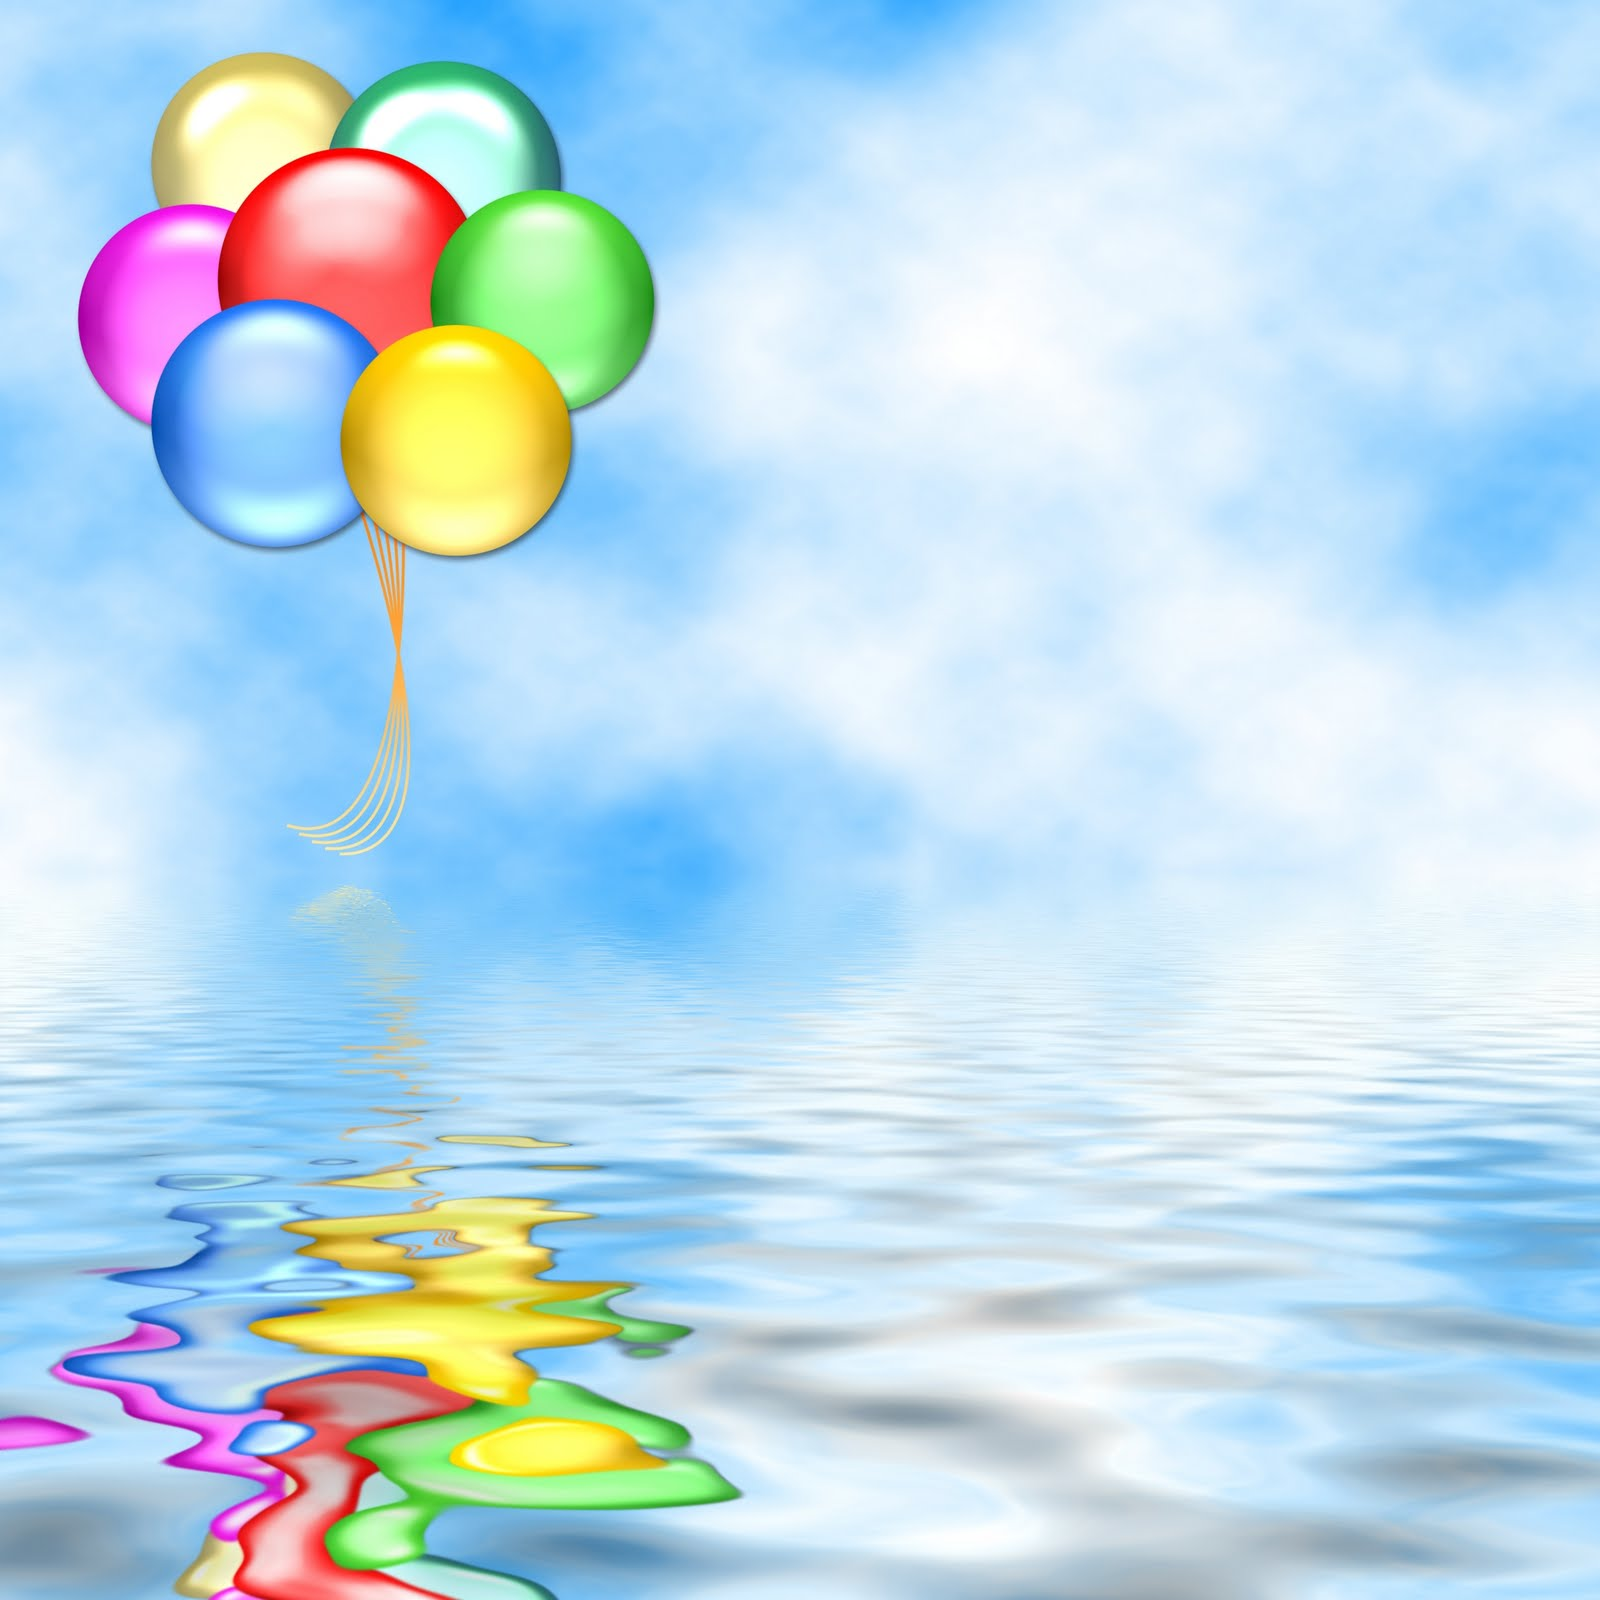 hd birthday backgrounds for photoshop ; Birthday+balloon+backgrounds+2